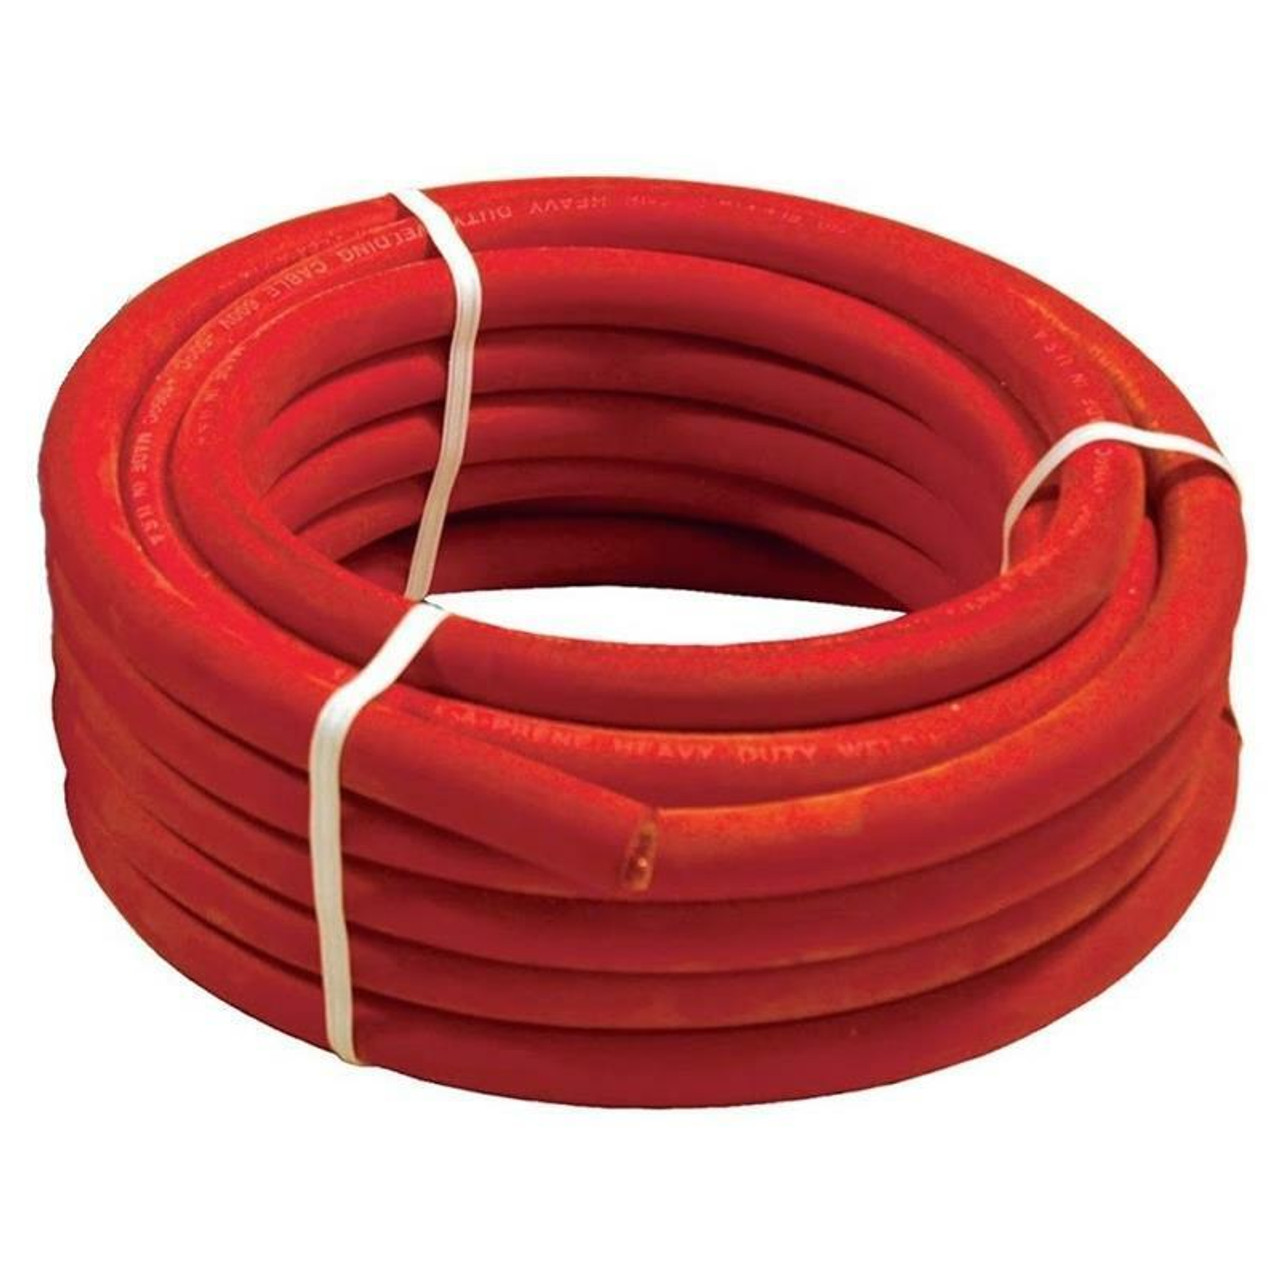 25 Foot of Red 2/0 Flex-A-Prene Welding and Battery Cable Made In USA